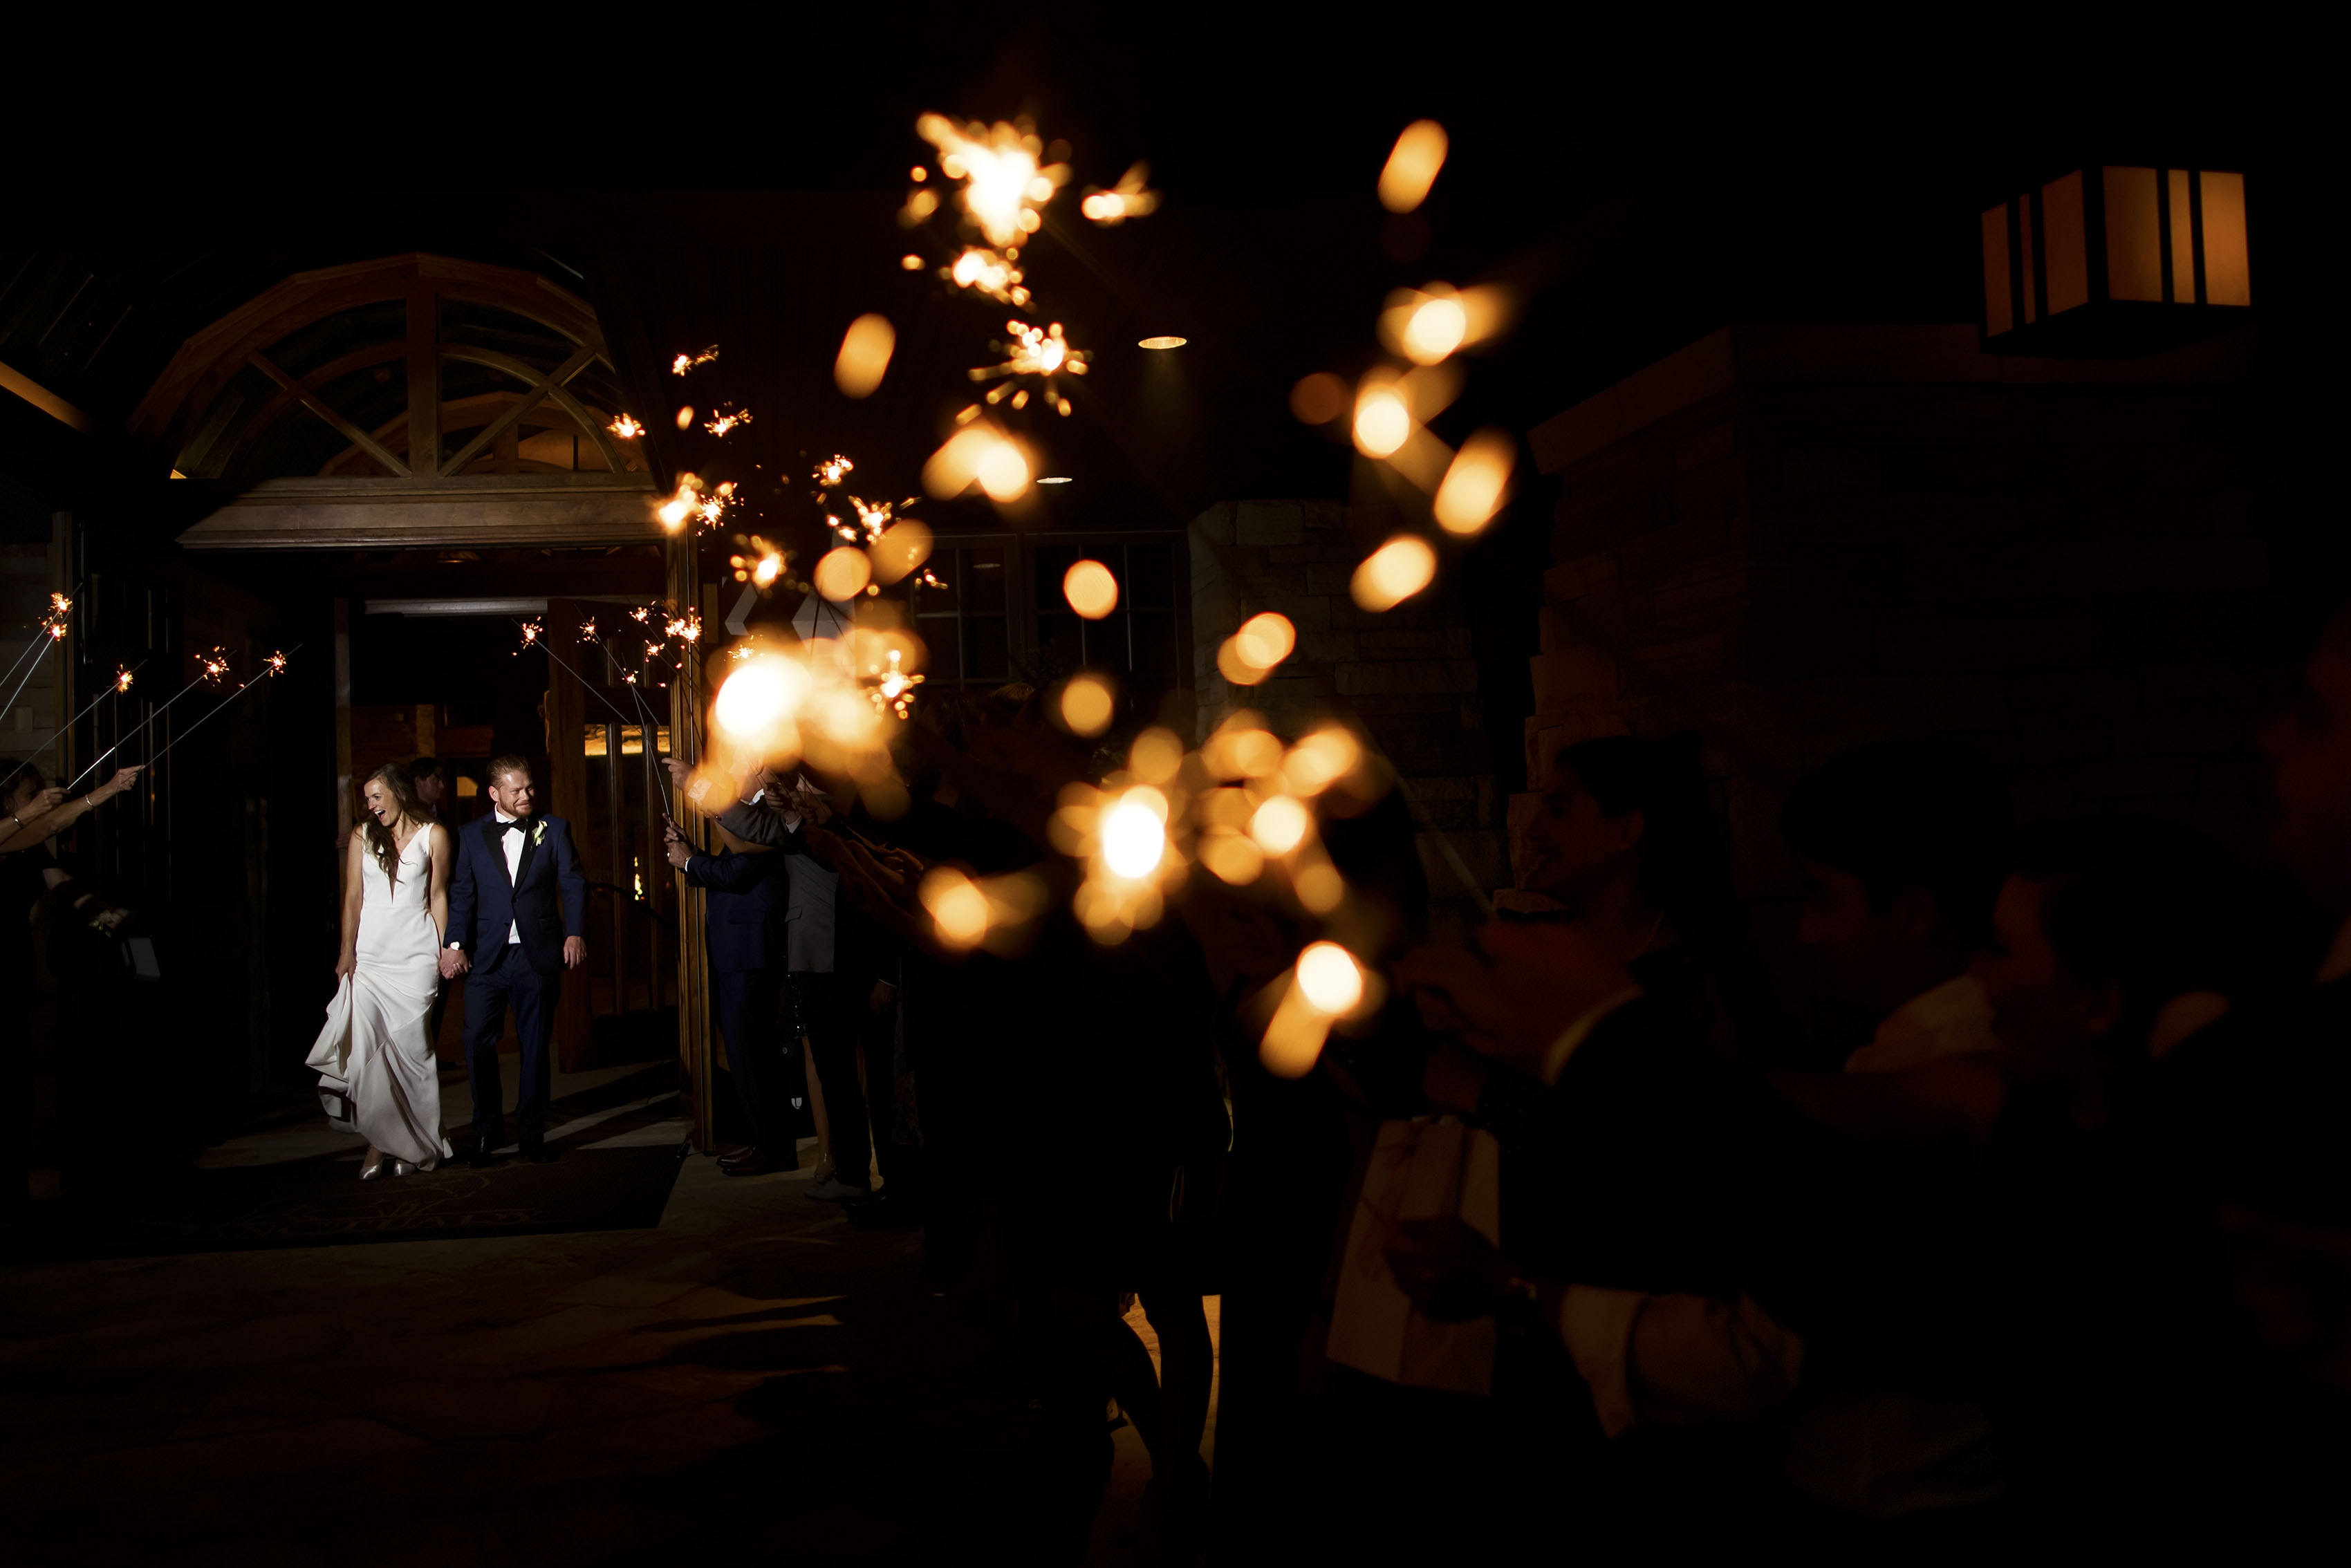 The bride and groom leave their wedding reception through a tunnel of sparklers at Sanctuary